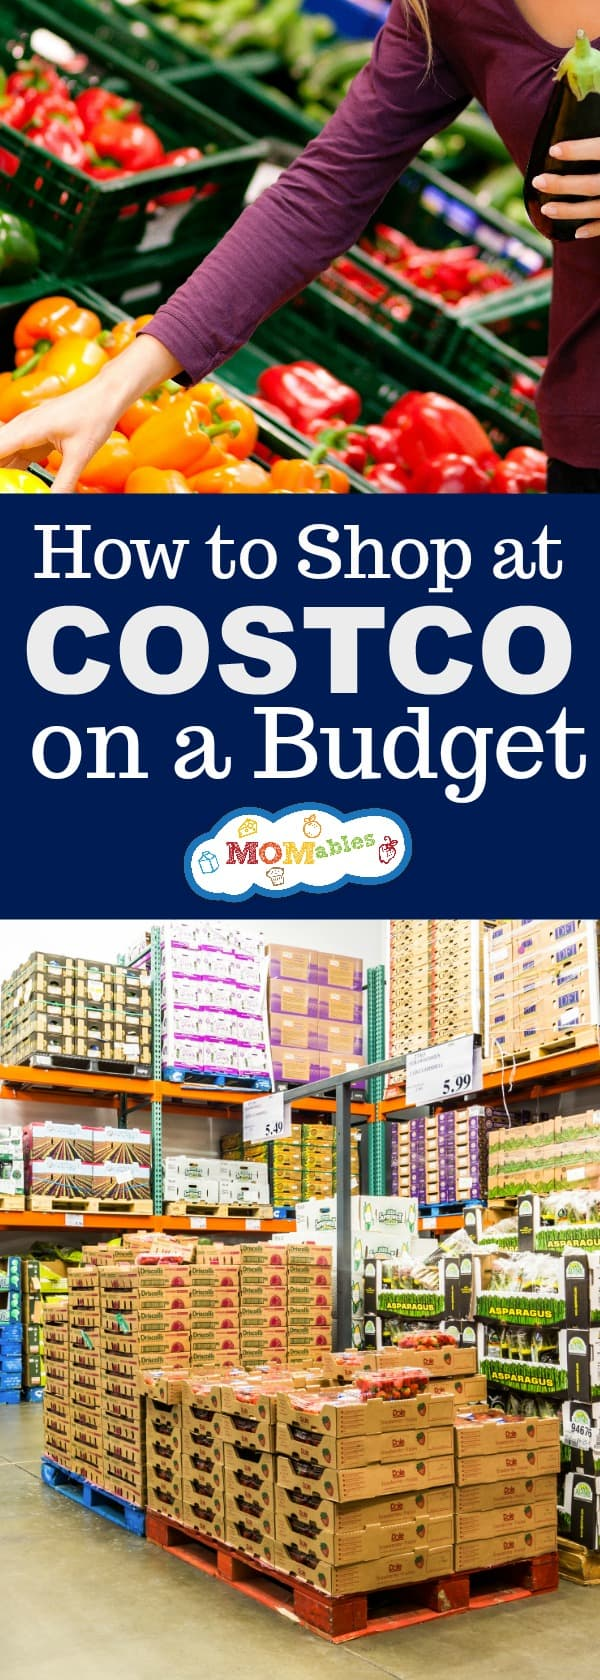 how to shop at costco on a budget